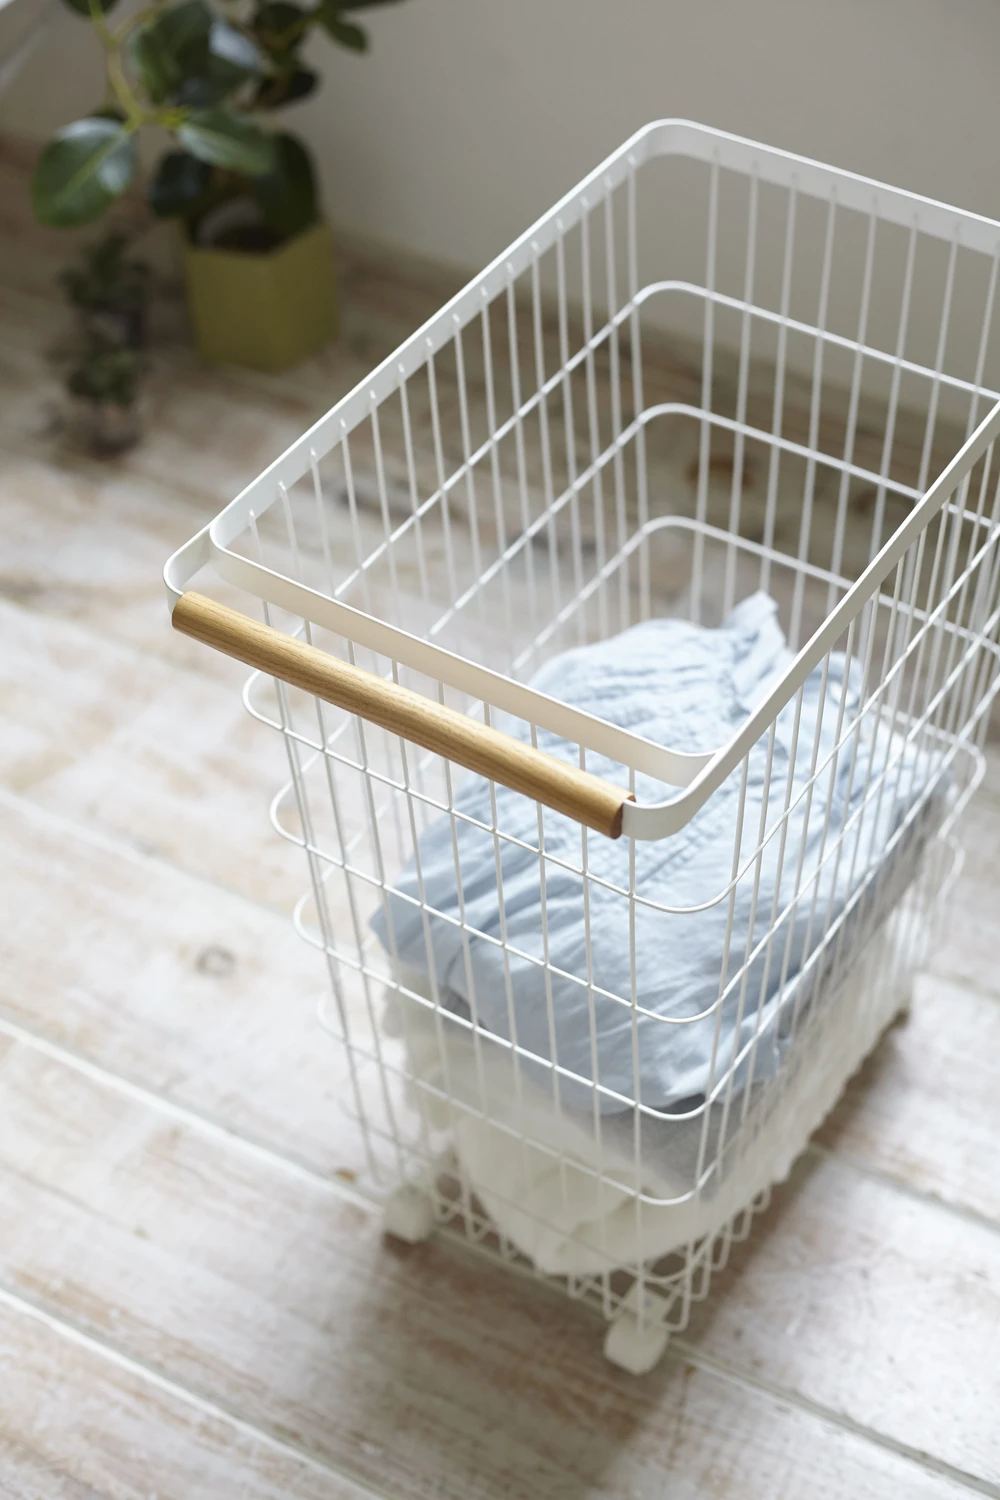 Slim Rolling Laundry Basket In 2020 Rolling Laundry Basket